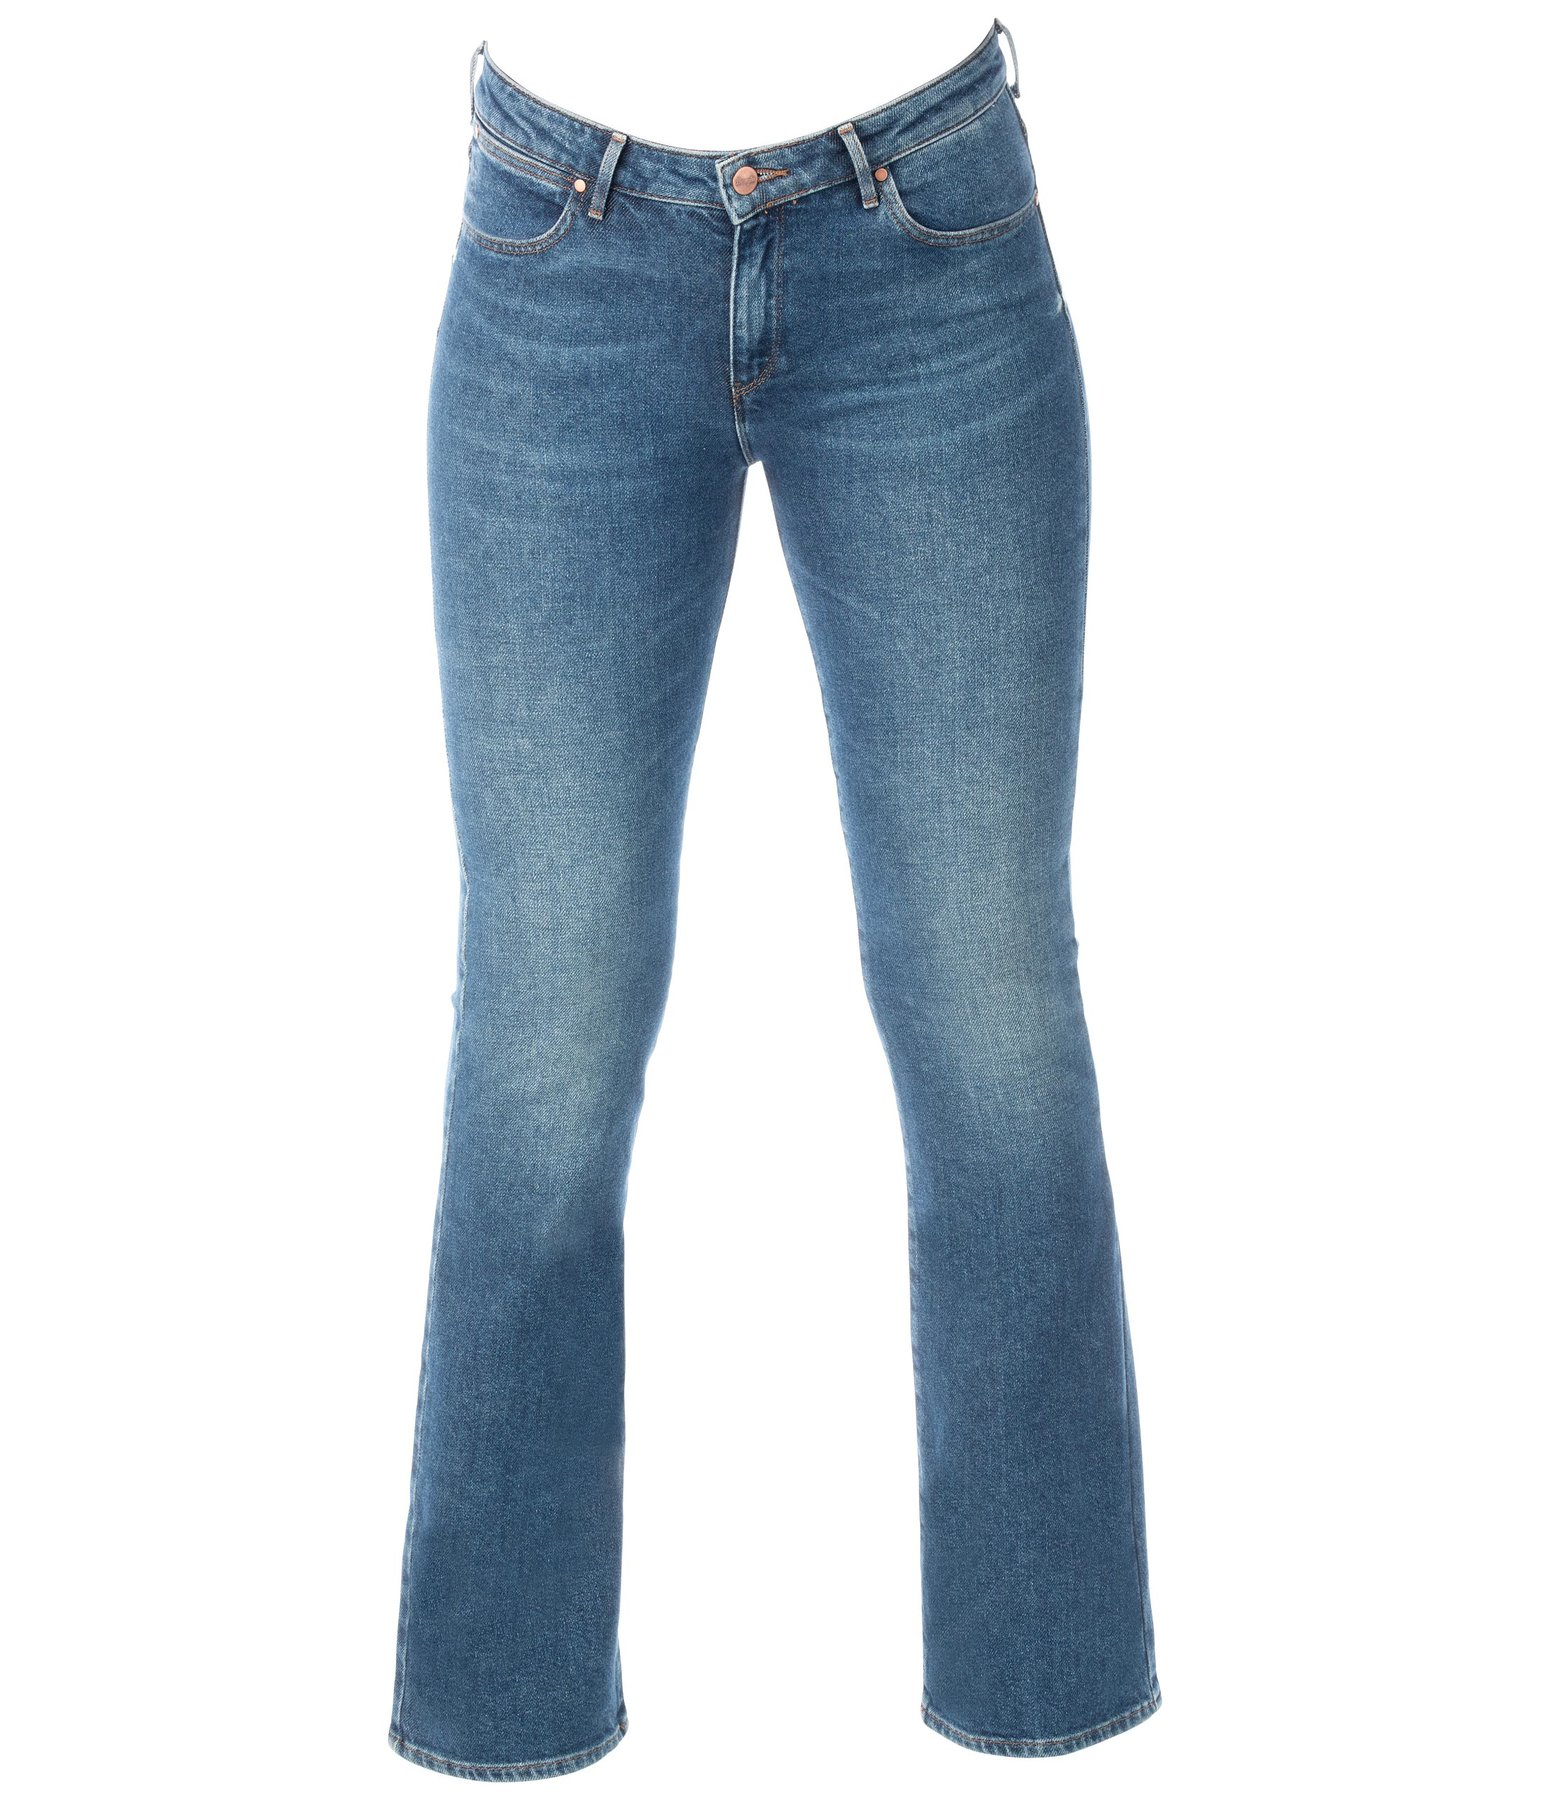 Jeans Bootcut Yucca Valley Länge 32